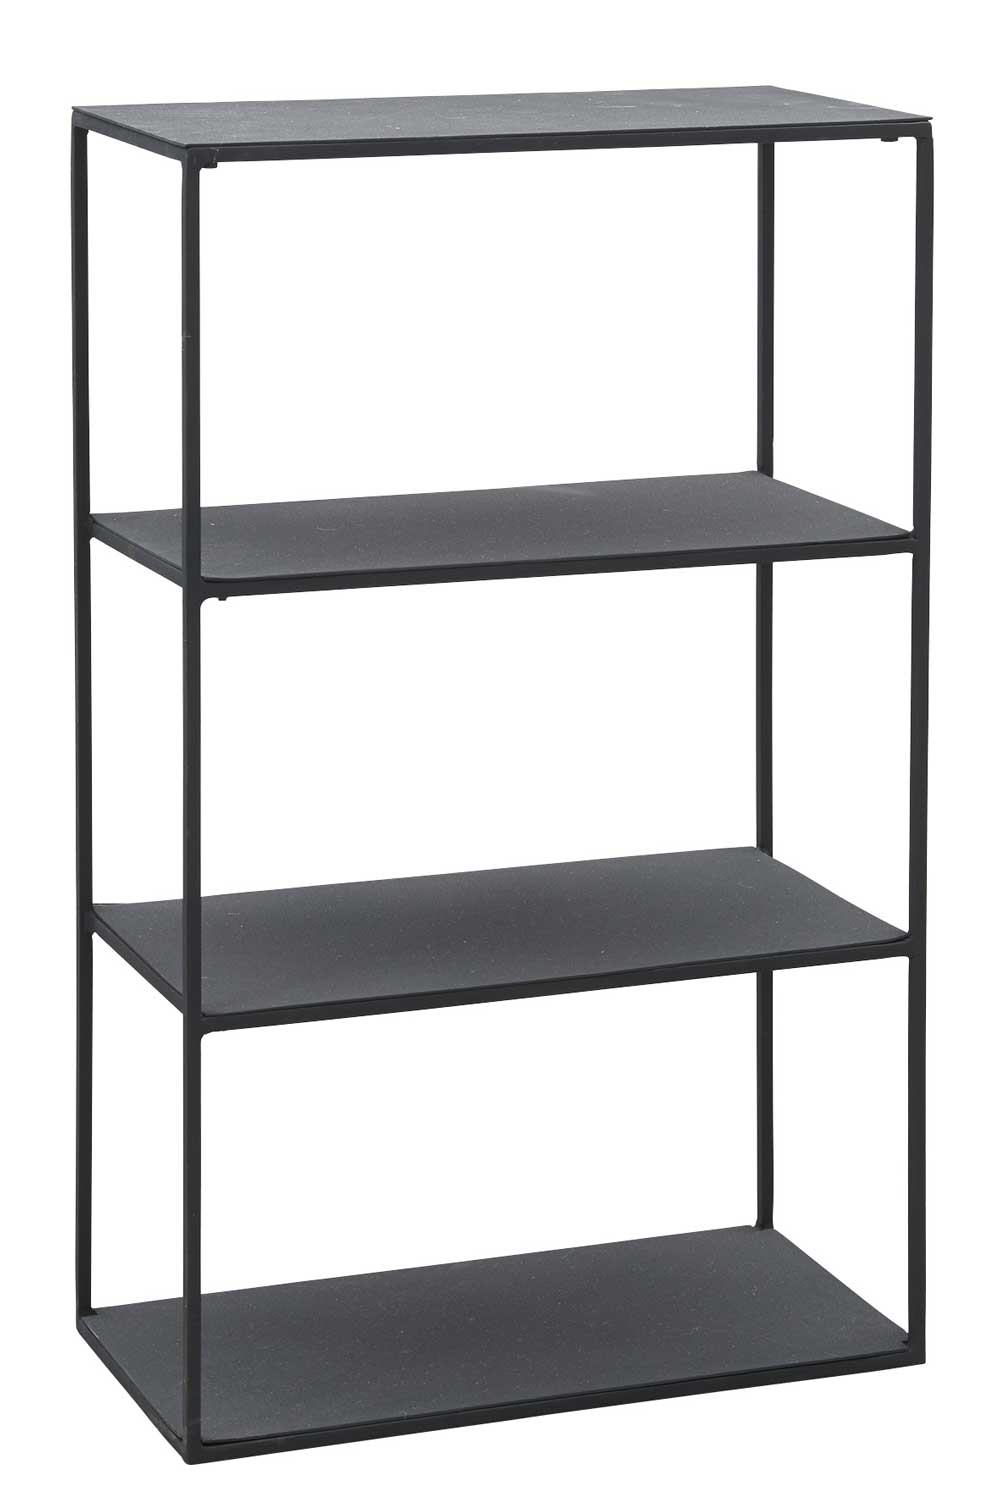 Image of   HOUSE DOCTOR Rack reol 25x50 cm